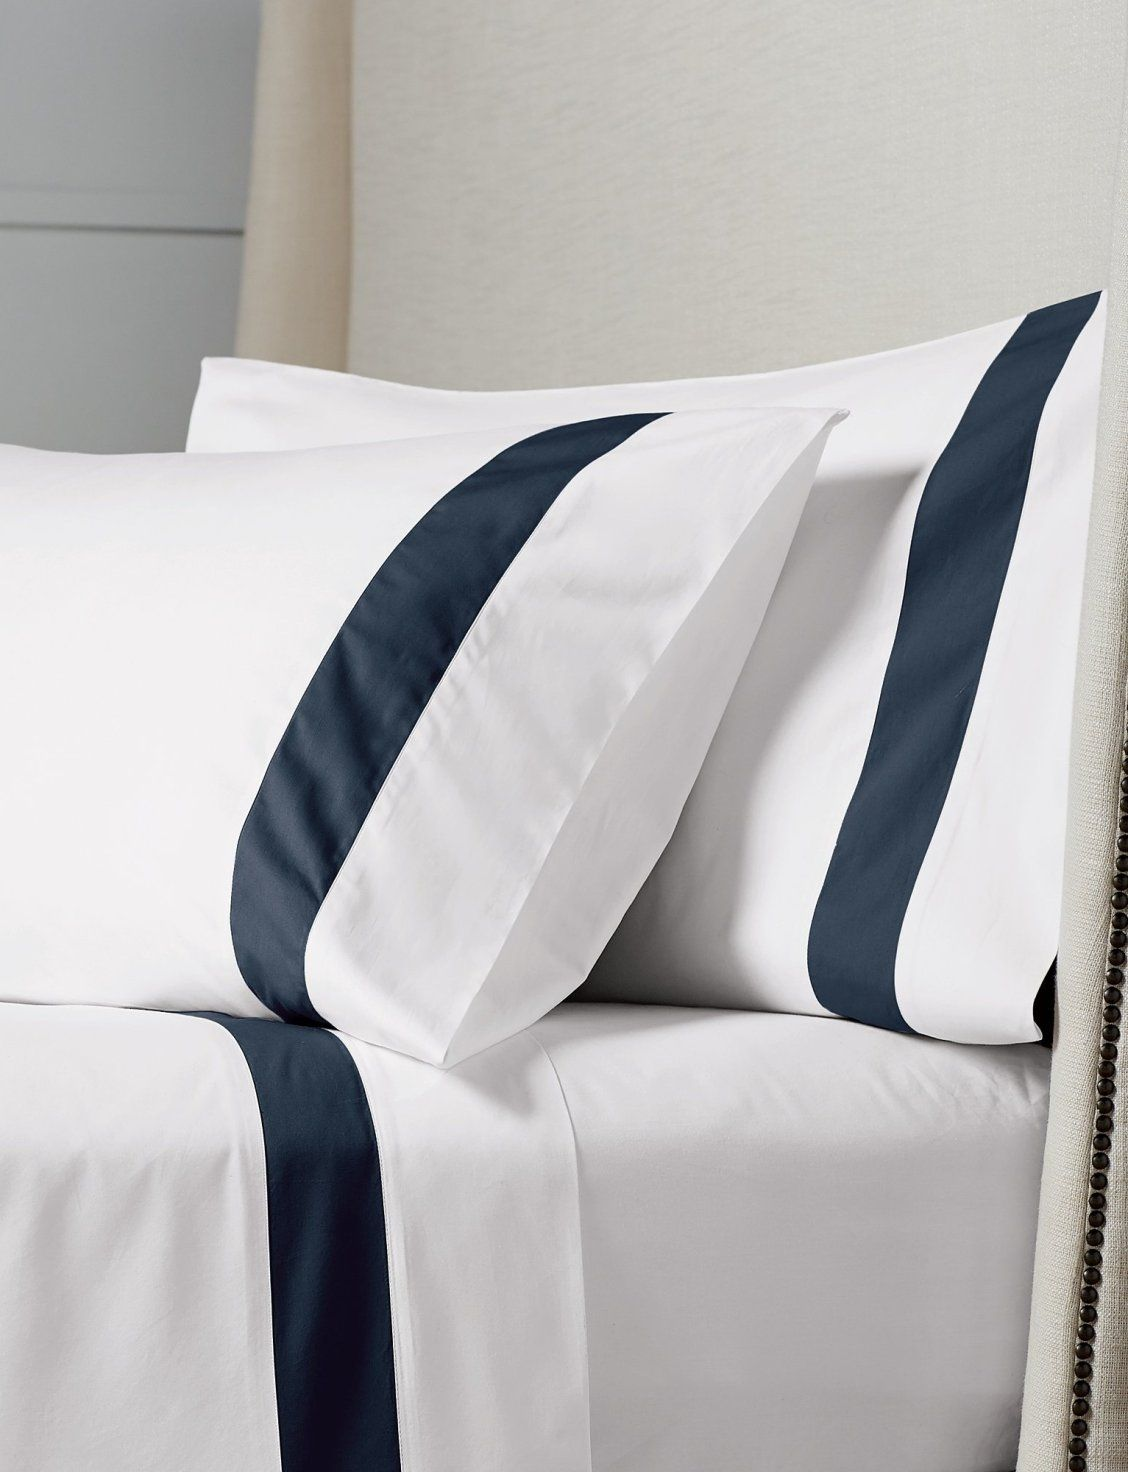 Resort Border Frame Egyptian Cotton Percale Sheet Set Frontgate In 2021 Hotel Bedding Sets Bed Linen Design Hotel Linen 100 egyptian cotton percale sheets